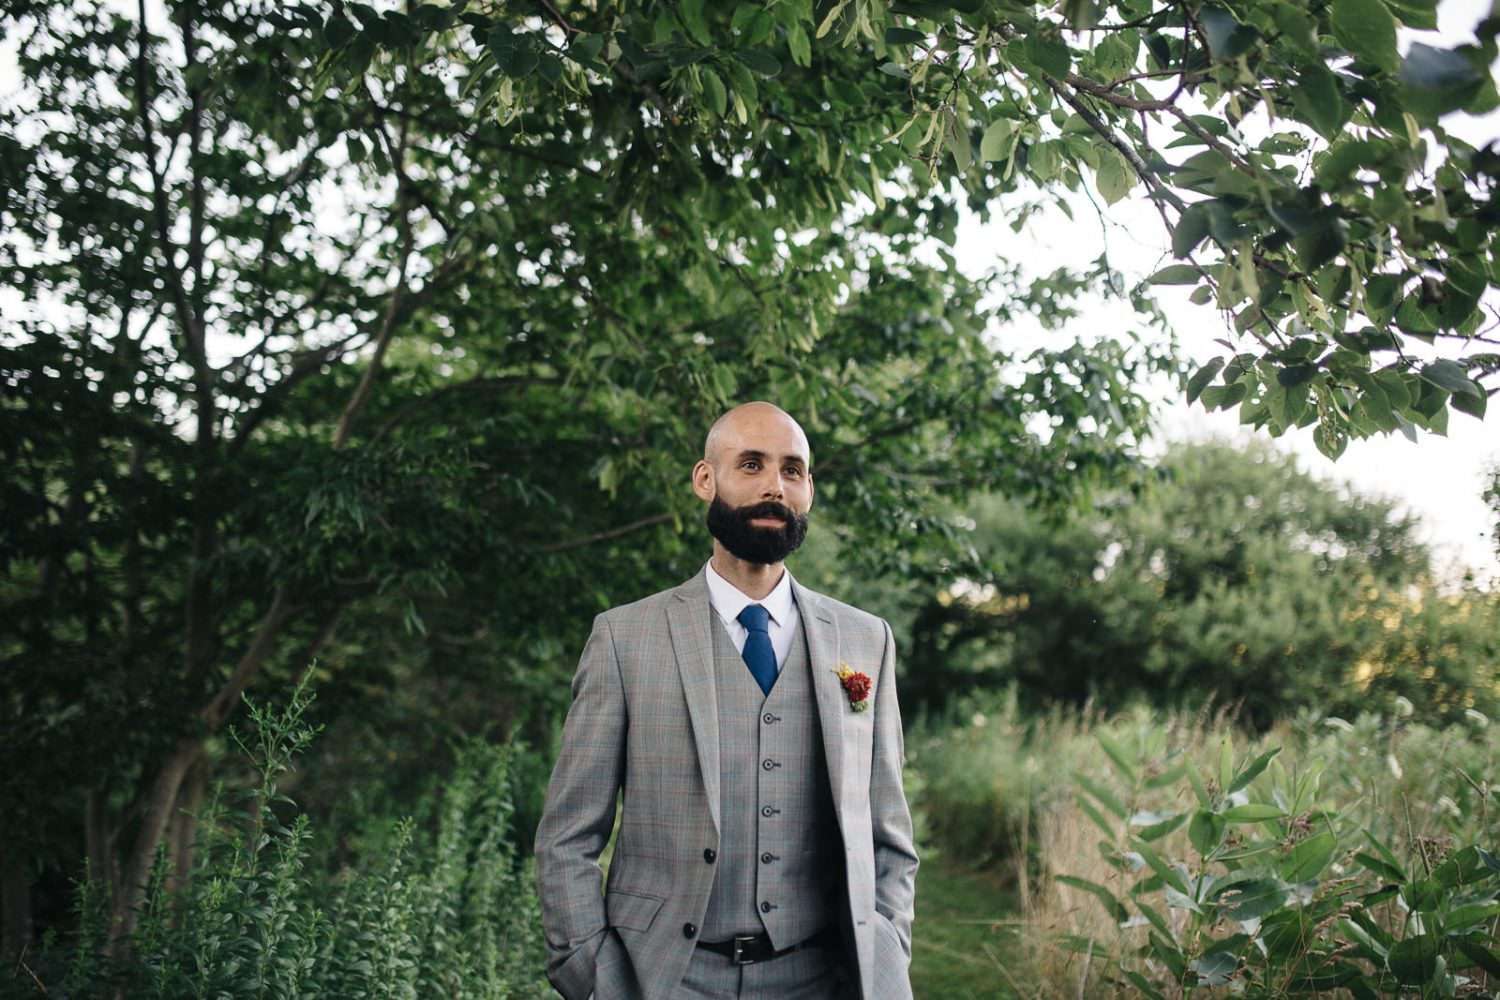 Groom standin in the catskill mountains in New York